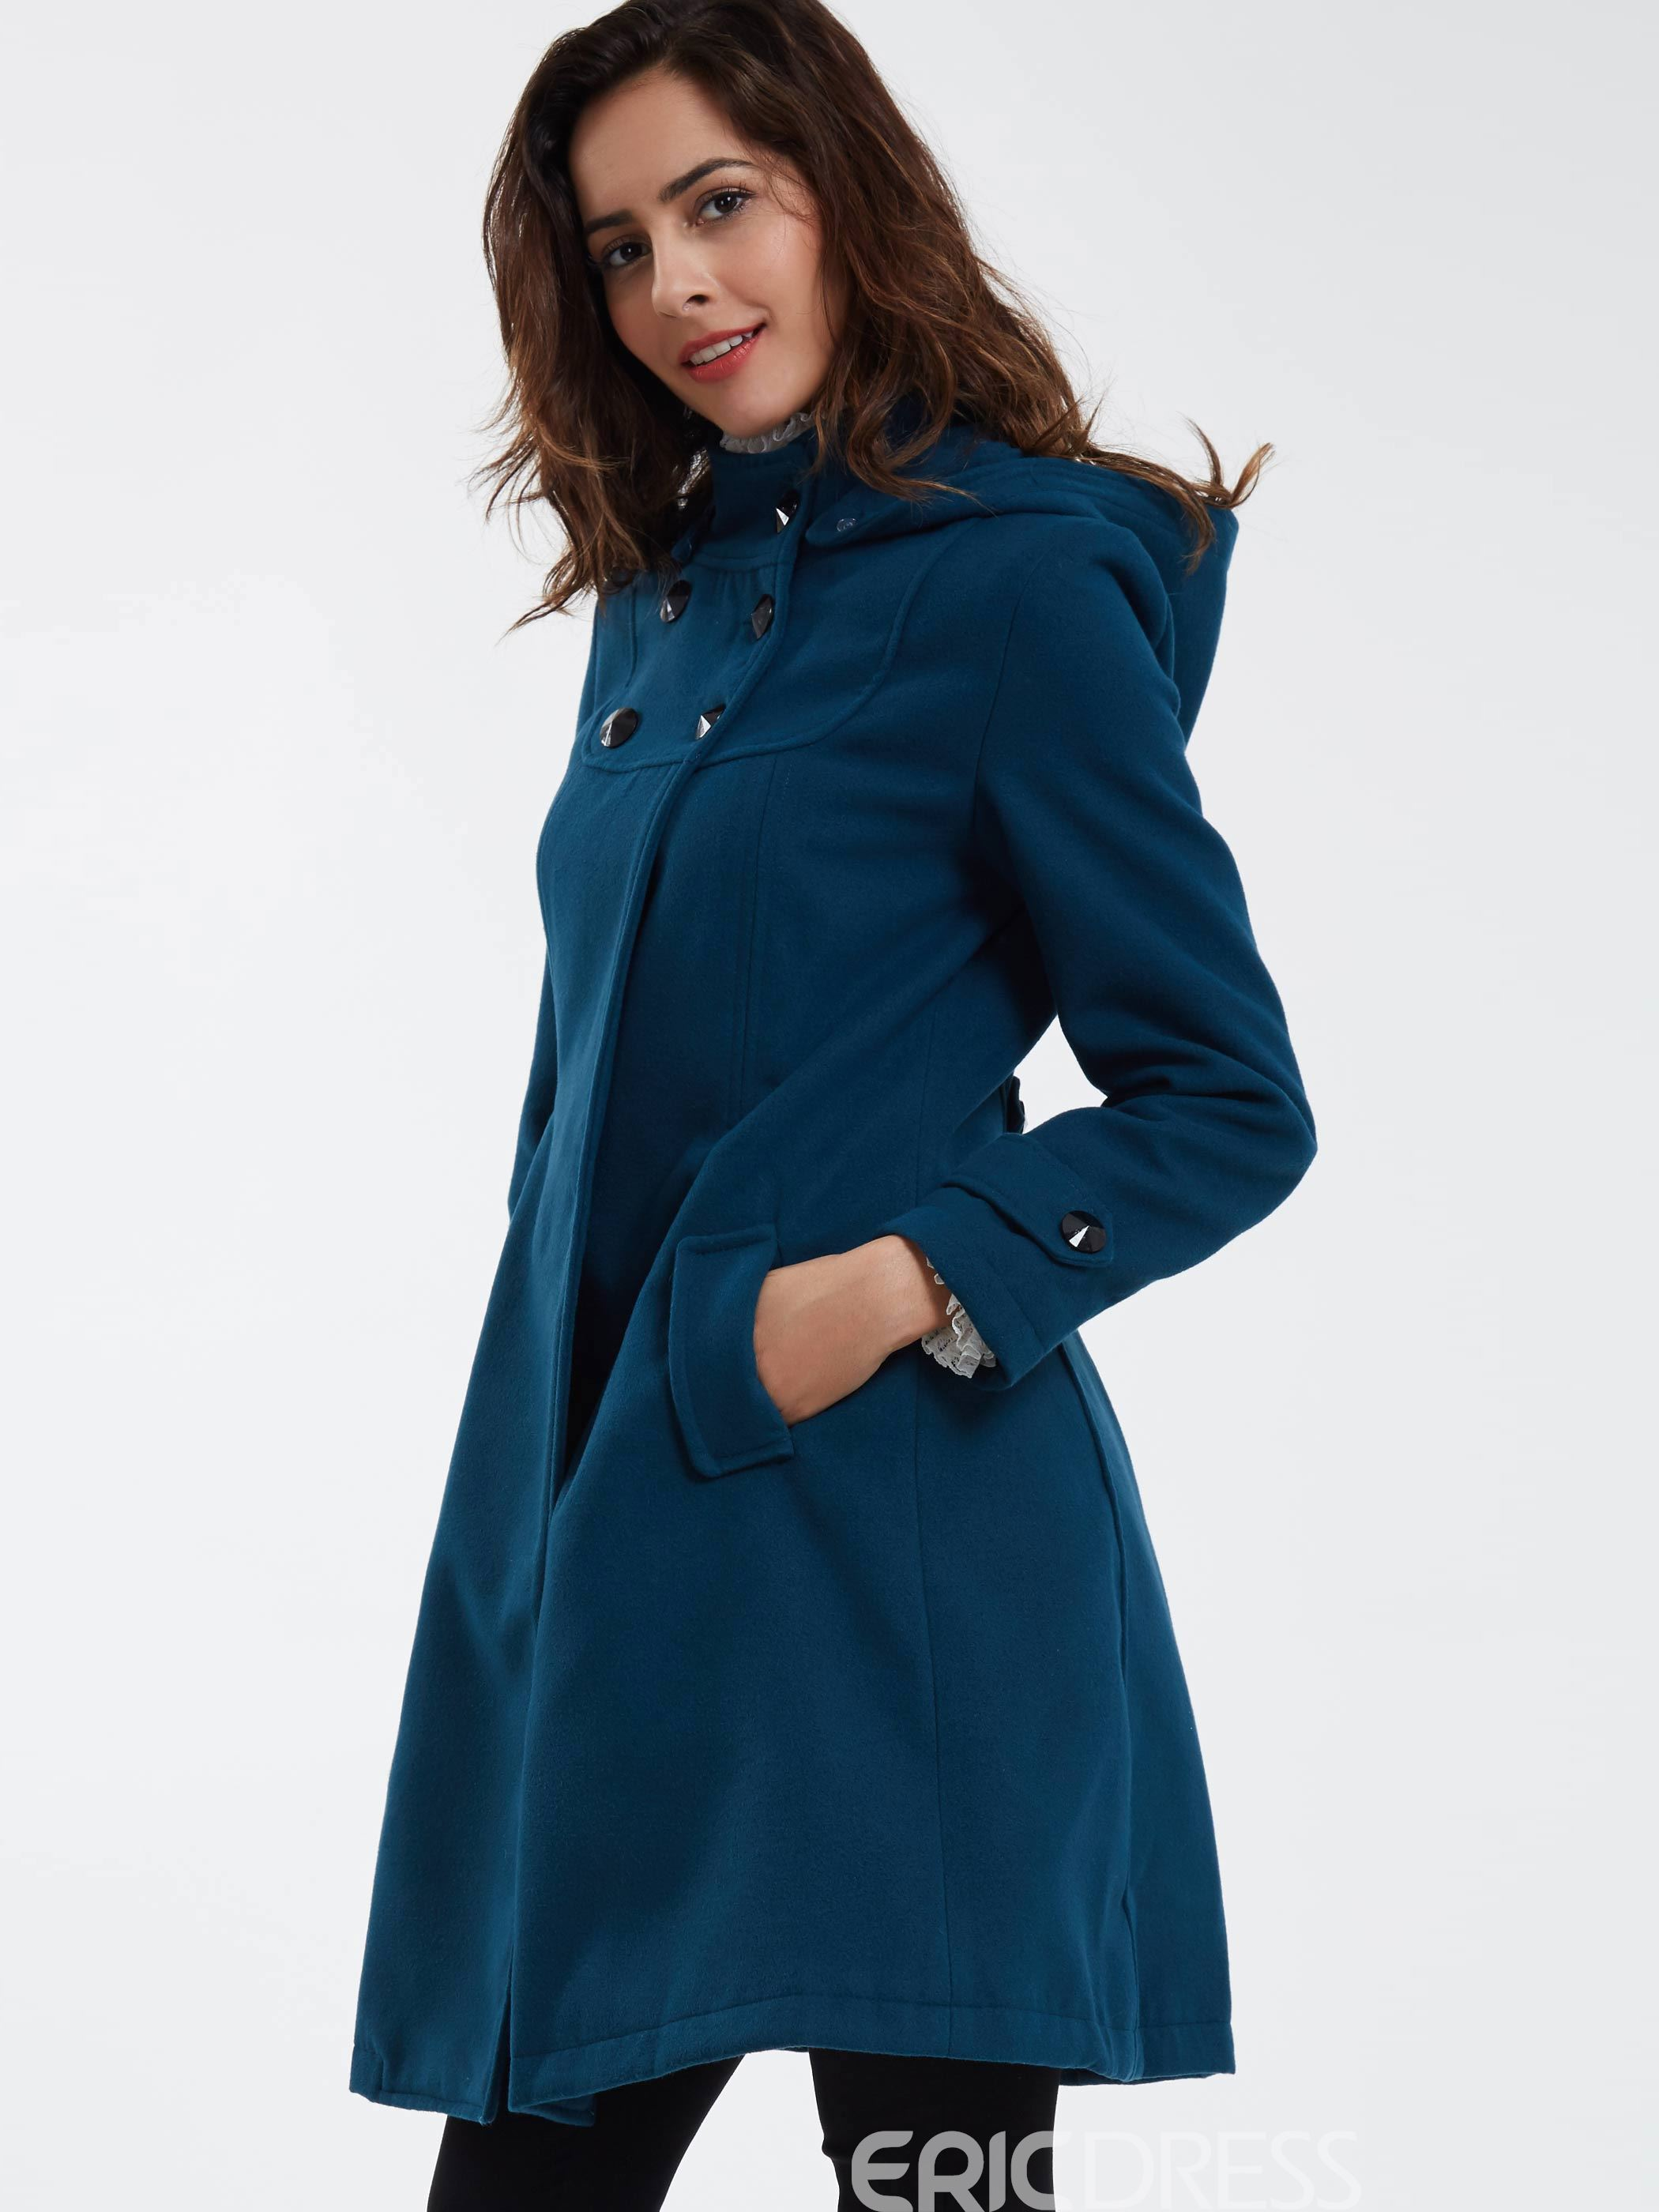 Ericdress Elegant Double-Breasted Hooded Coat